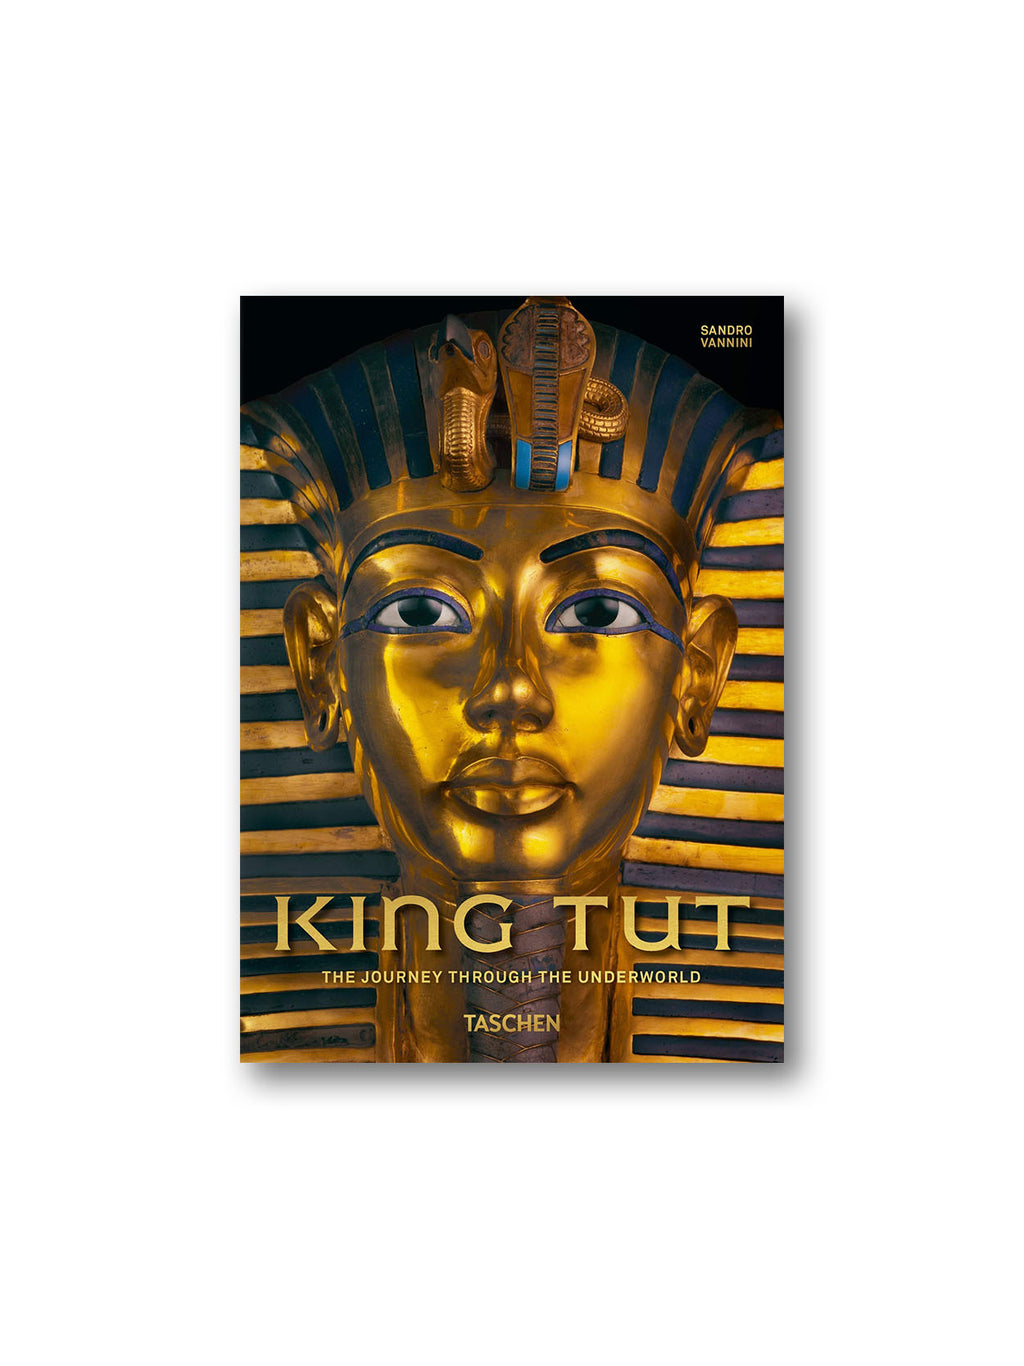 King Tut - The Journey through the Underworld - 40th Anniversary Edition